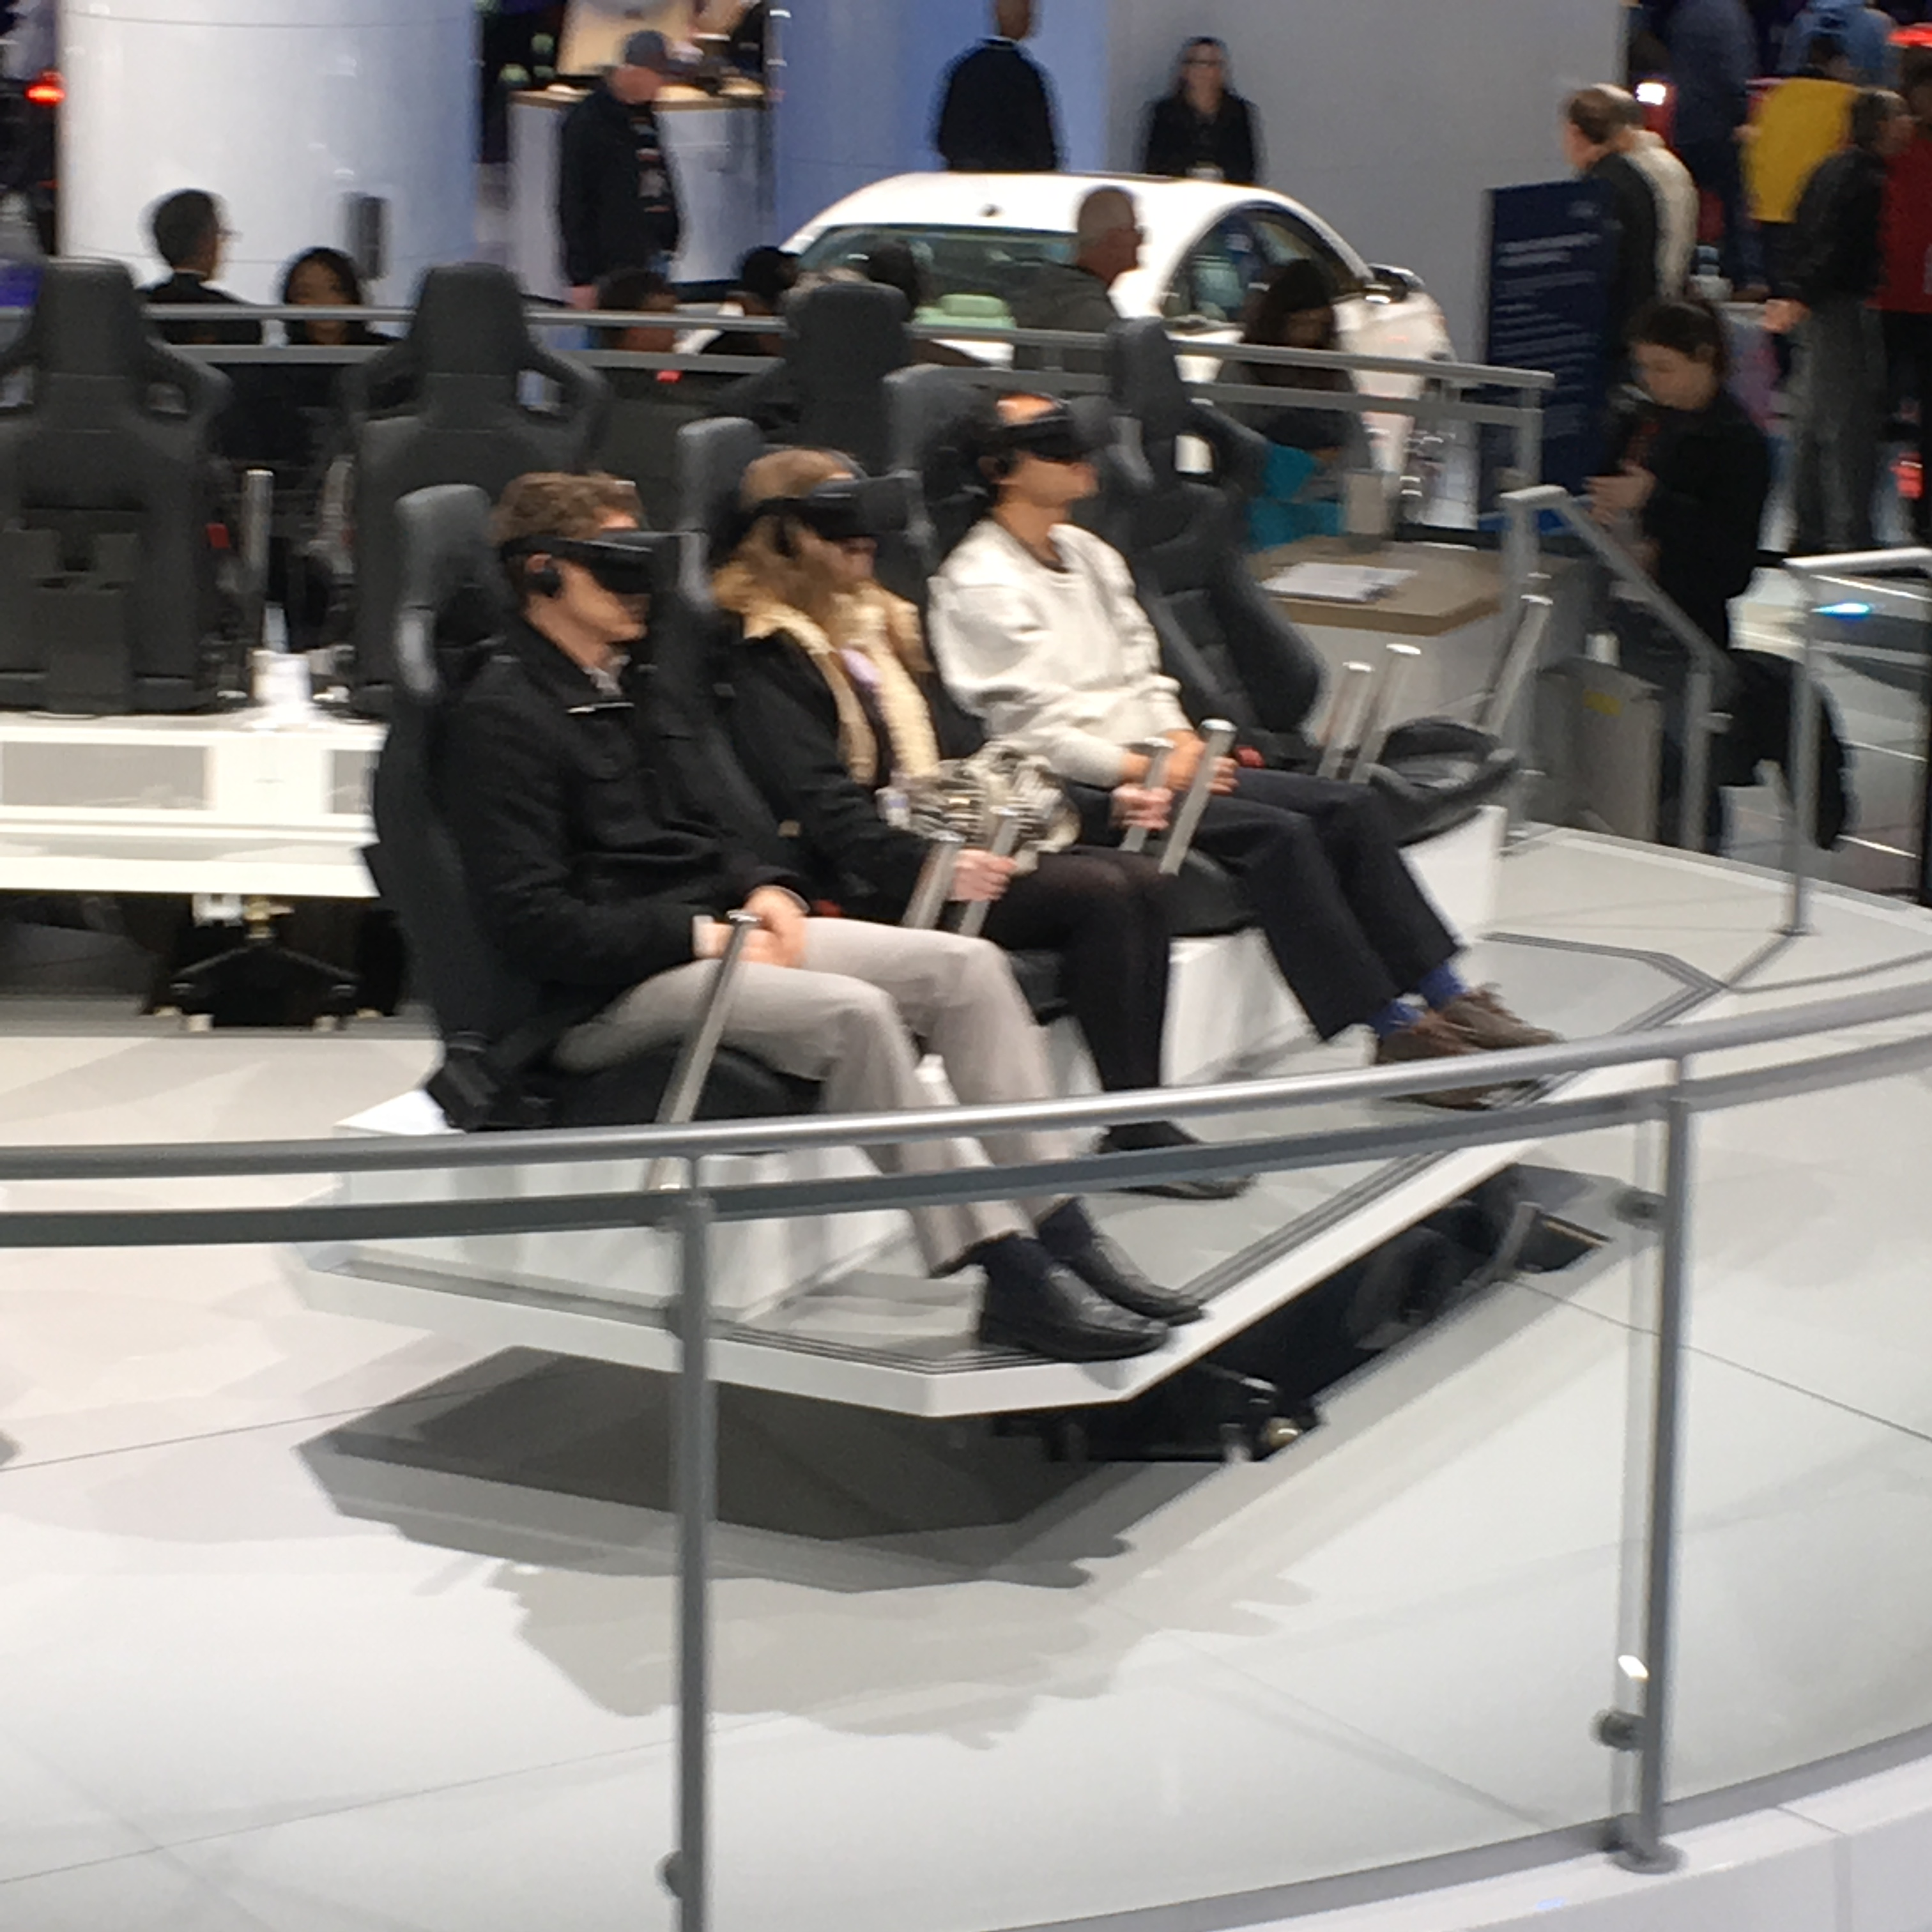 Virtual reality station at 2018 North American International Auto Show in Detroit